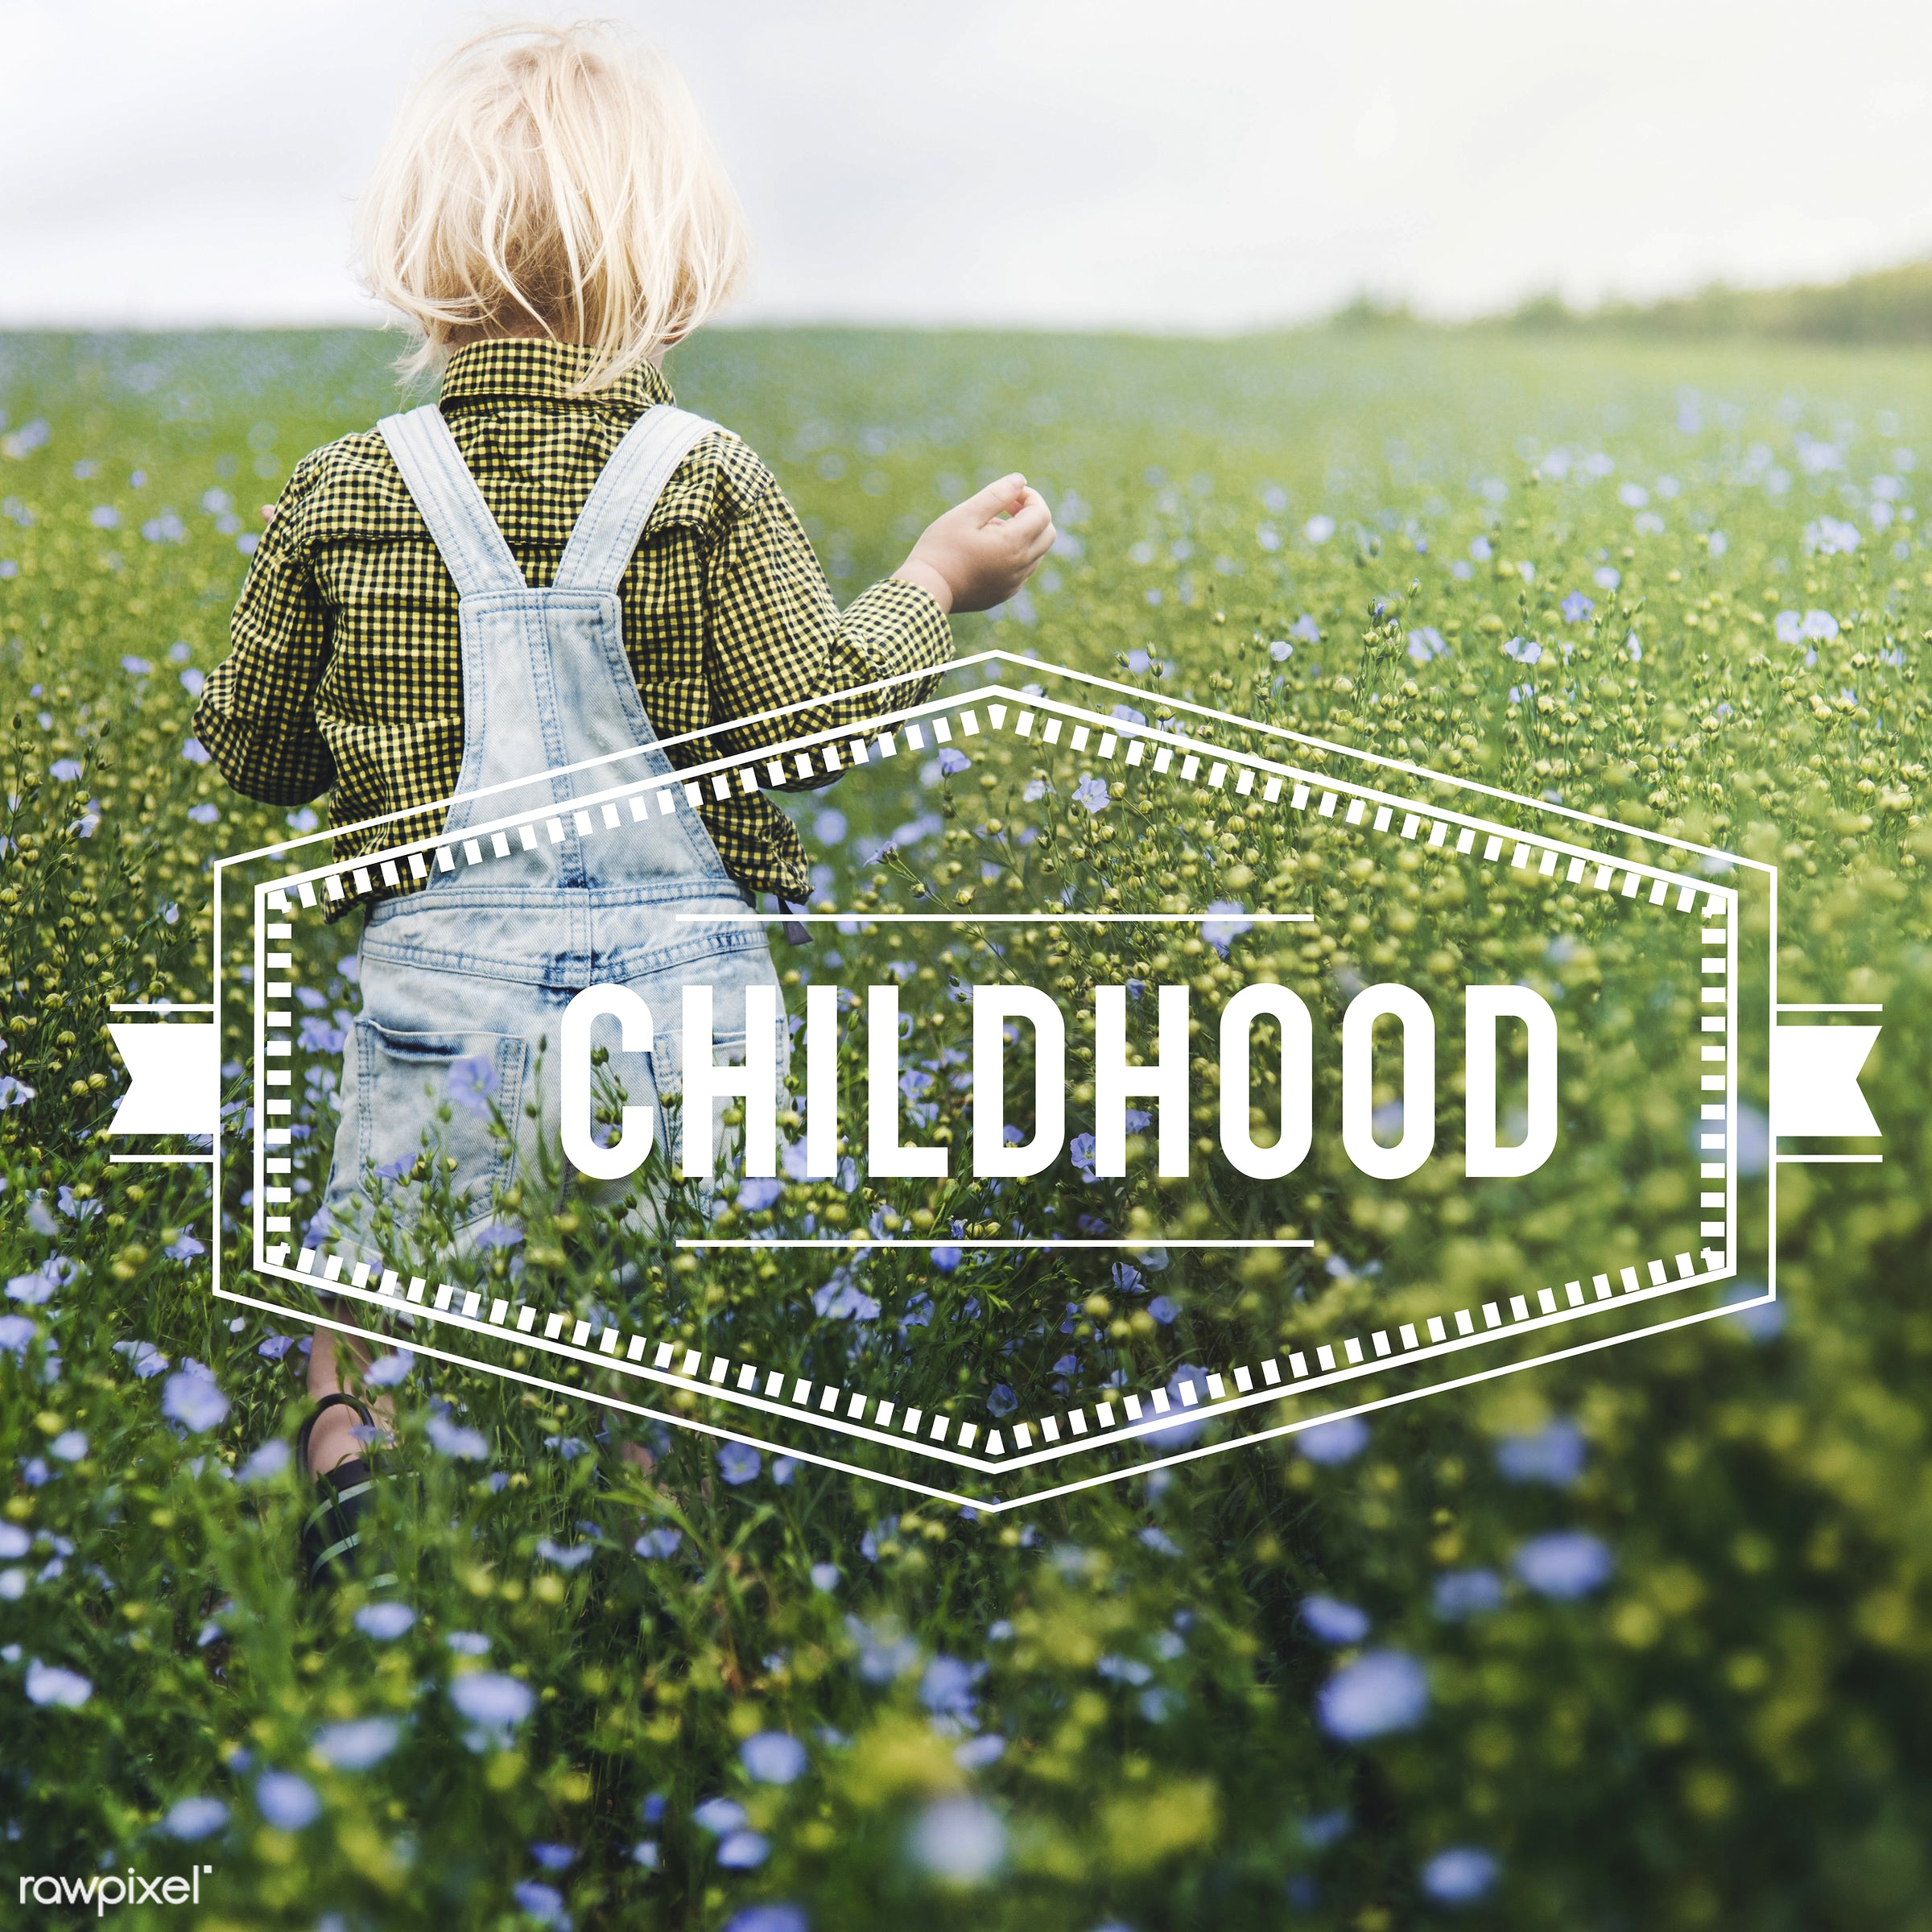 adorable, badge, banner, blonde, boy, caucasian, childhood, dungarees, enjoyment, environment, flower garden, flowers, fresh...